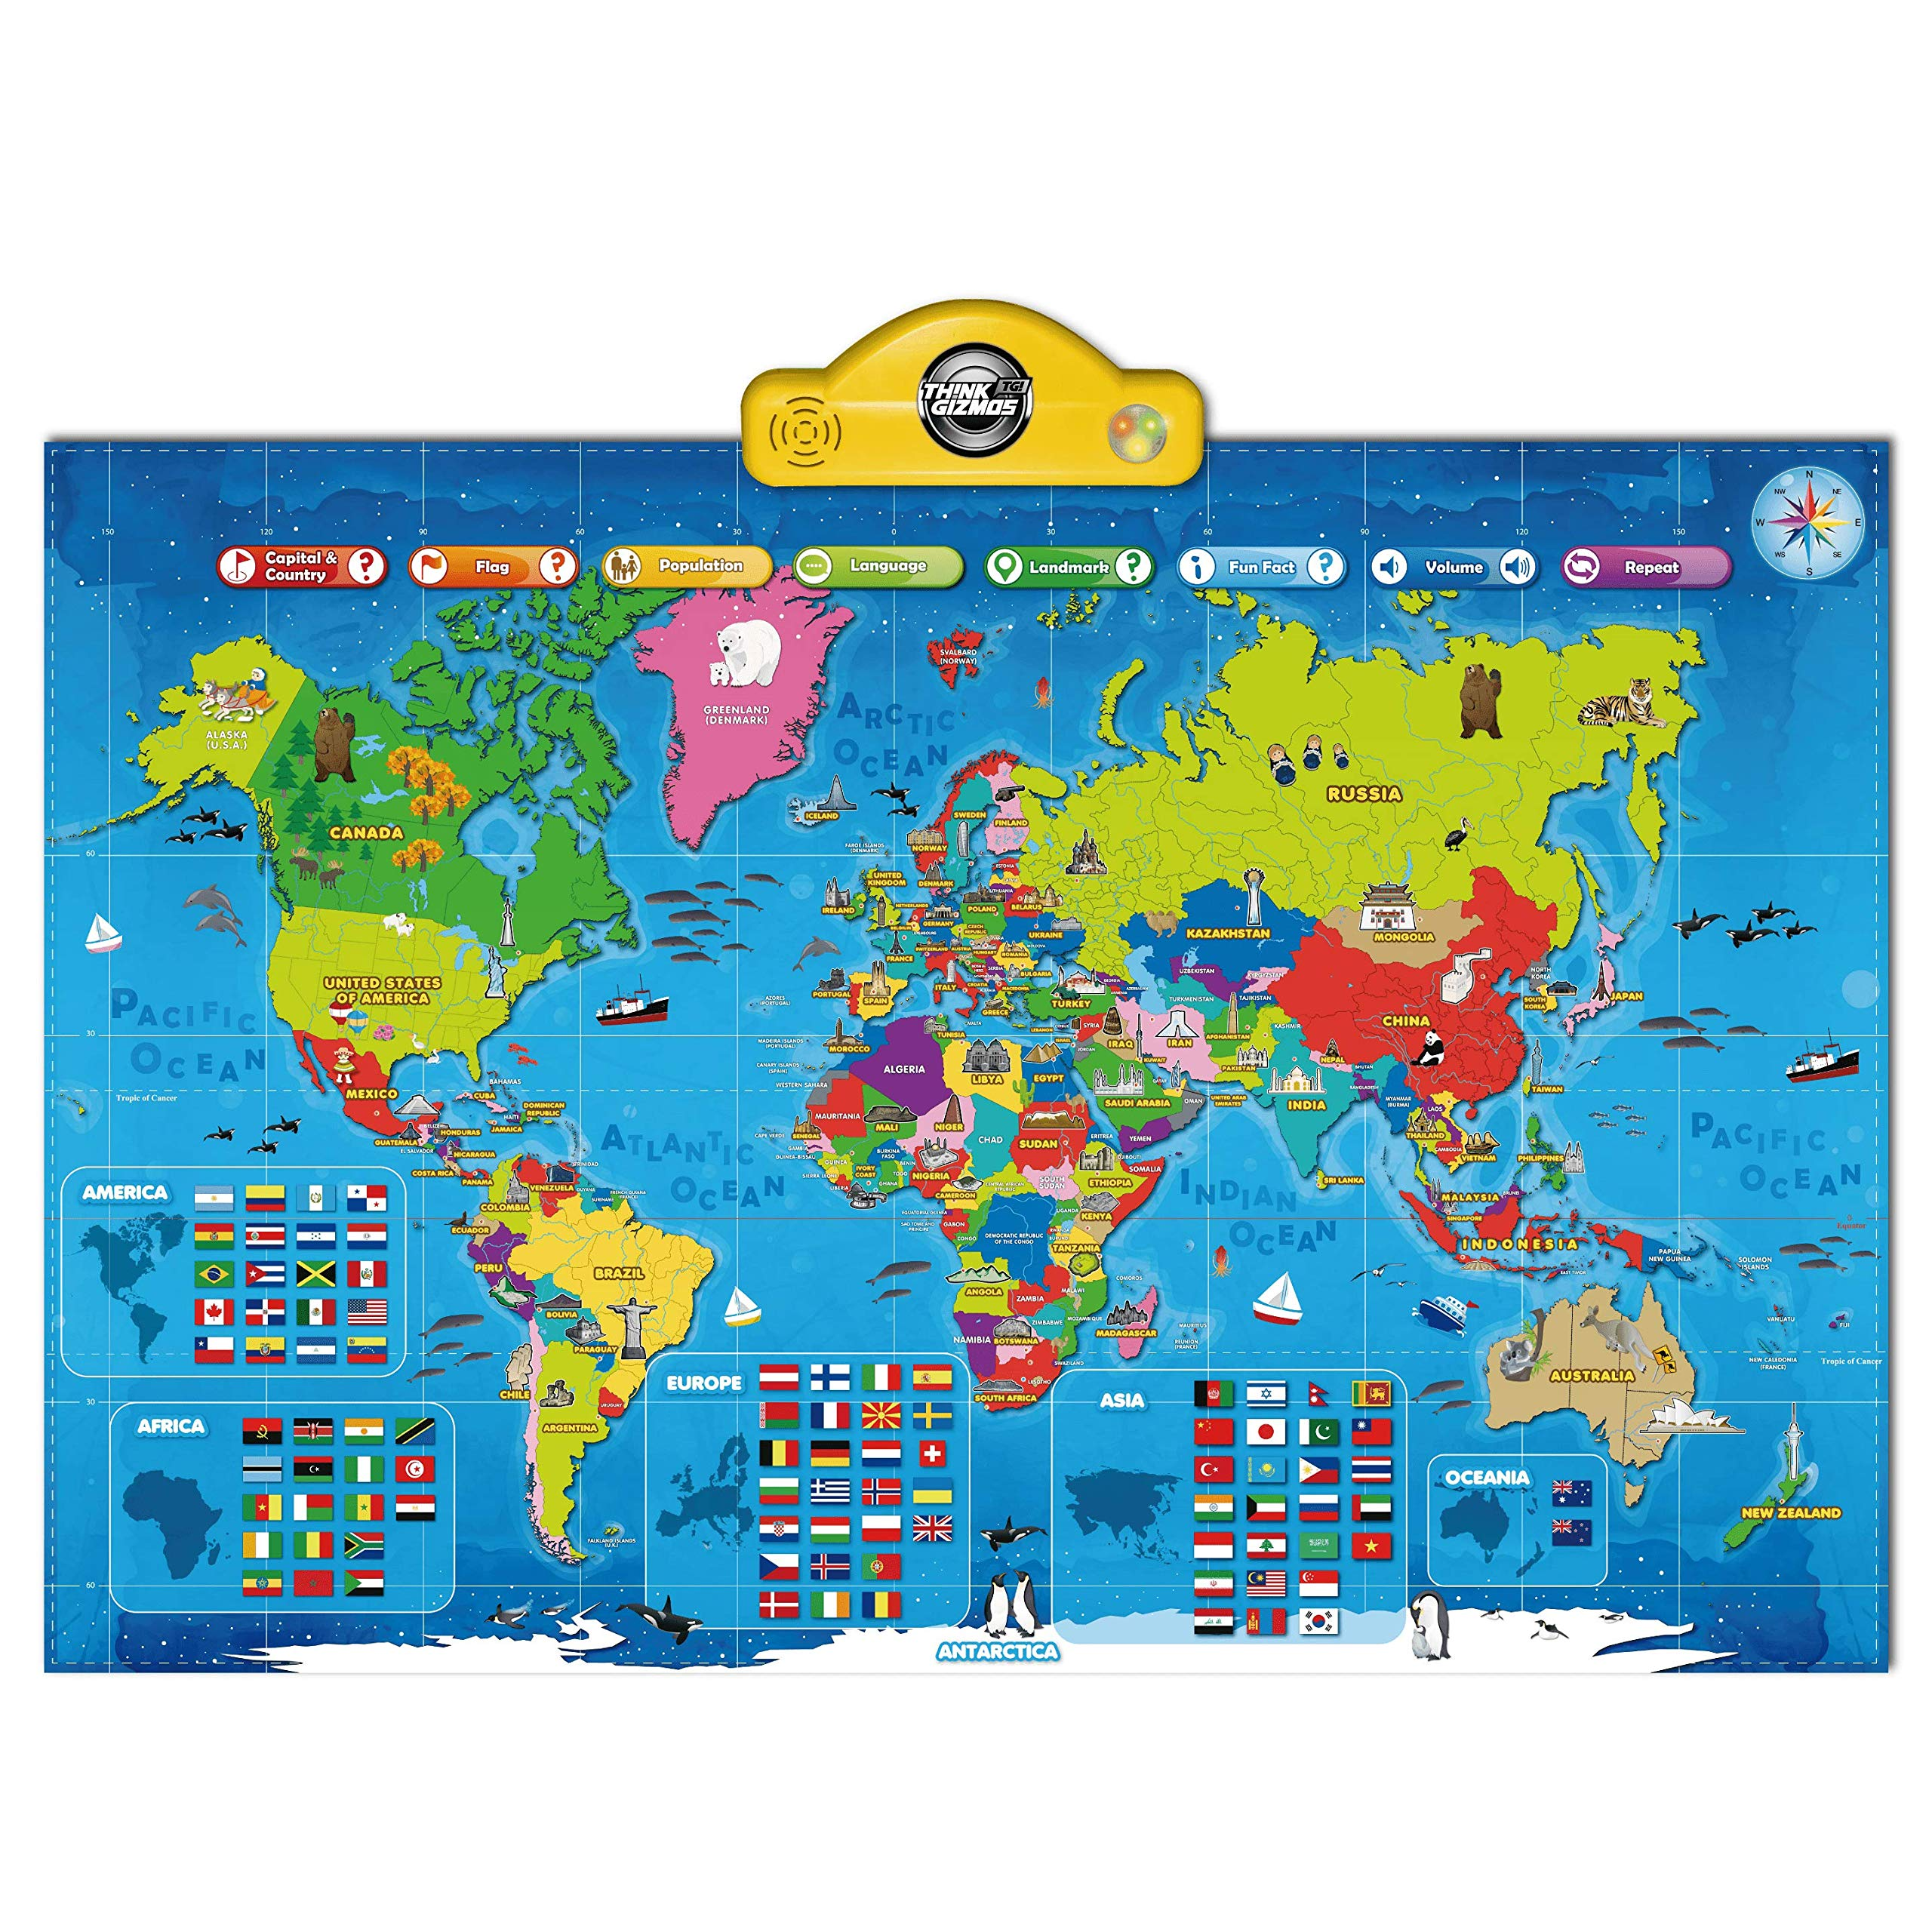 Interactive Talking World Map for Kids TG661 - Push, Learn and Discover Over 1000 Facts About Our World - Ideal Interactive Learning Toy Gift for Boys & Girls Aged 5,6,7,8,9,10 - by ThinkGizmos